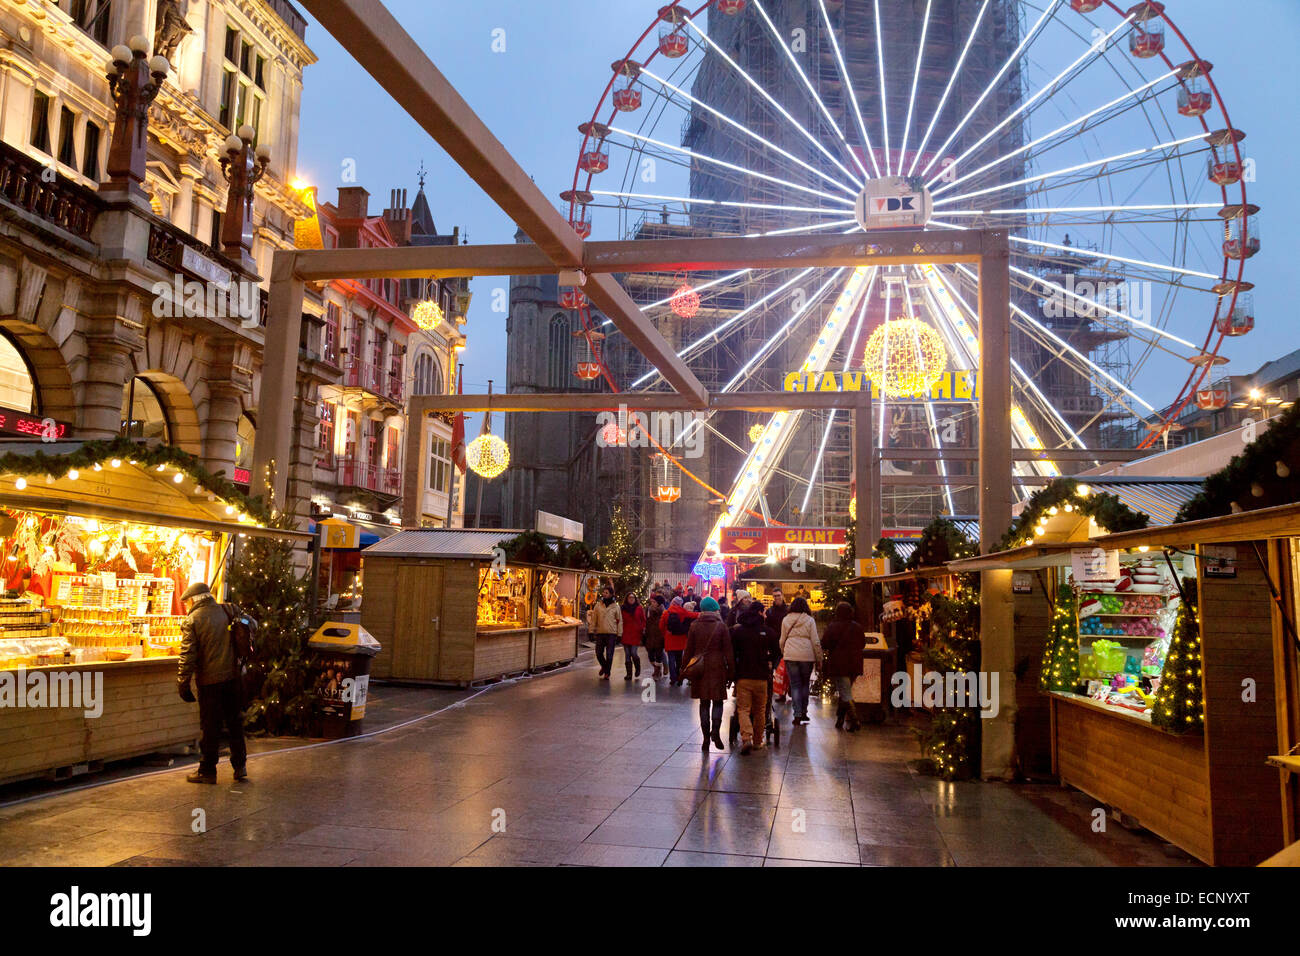 The big wheel and stalls at the Ghent Christmas Market at dusk, Ghent, ( Gent ), Belgium, Europe - Stock Image